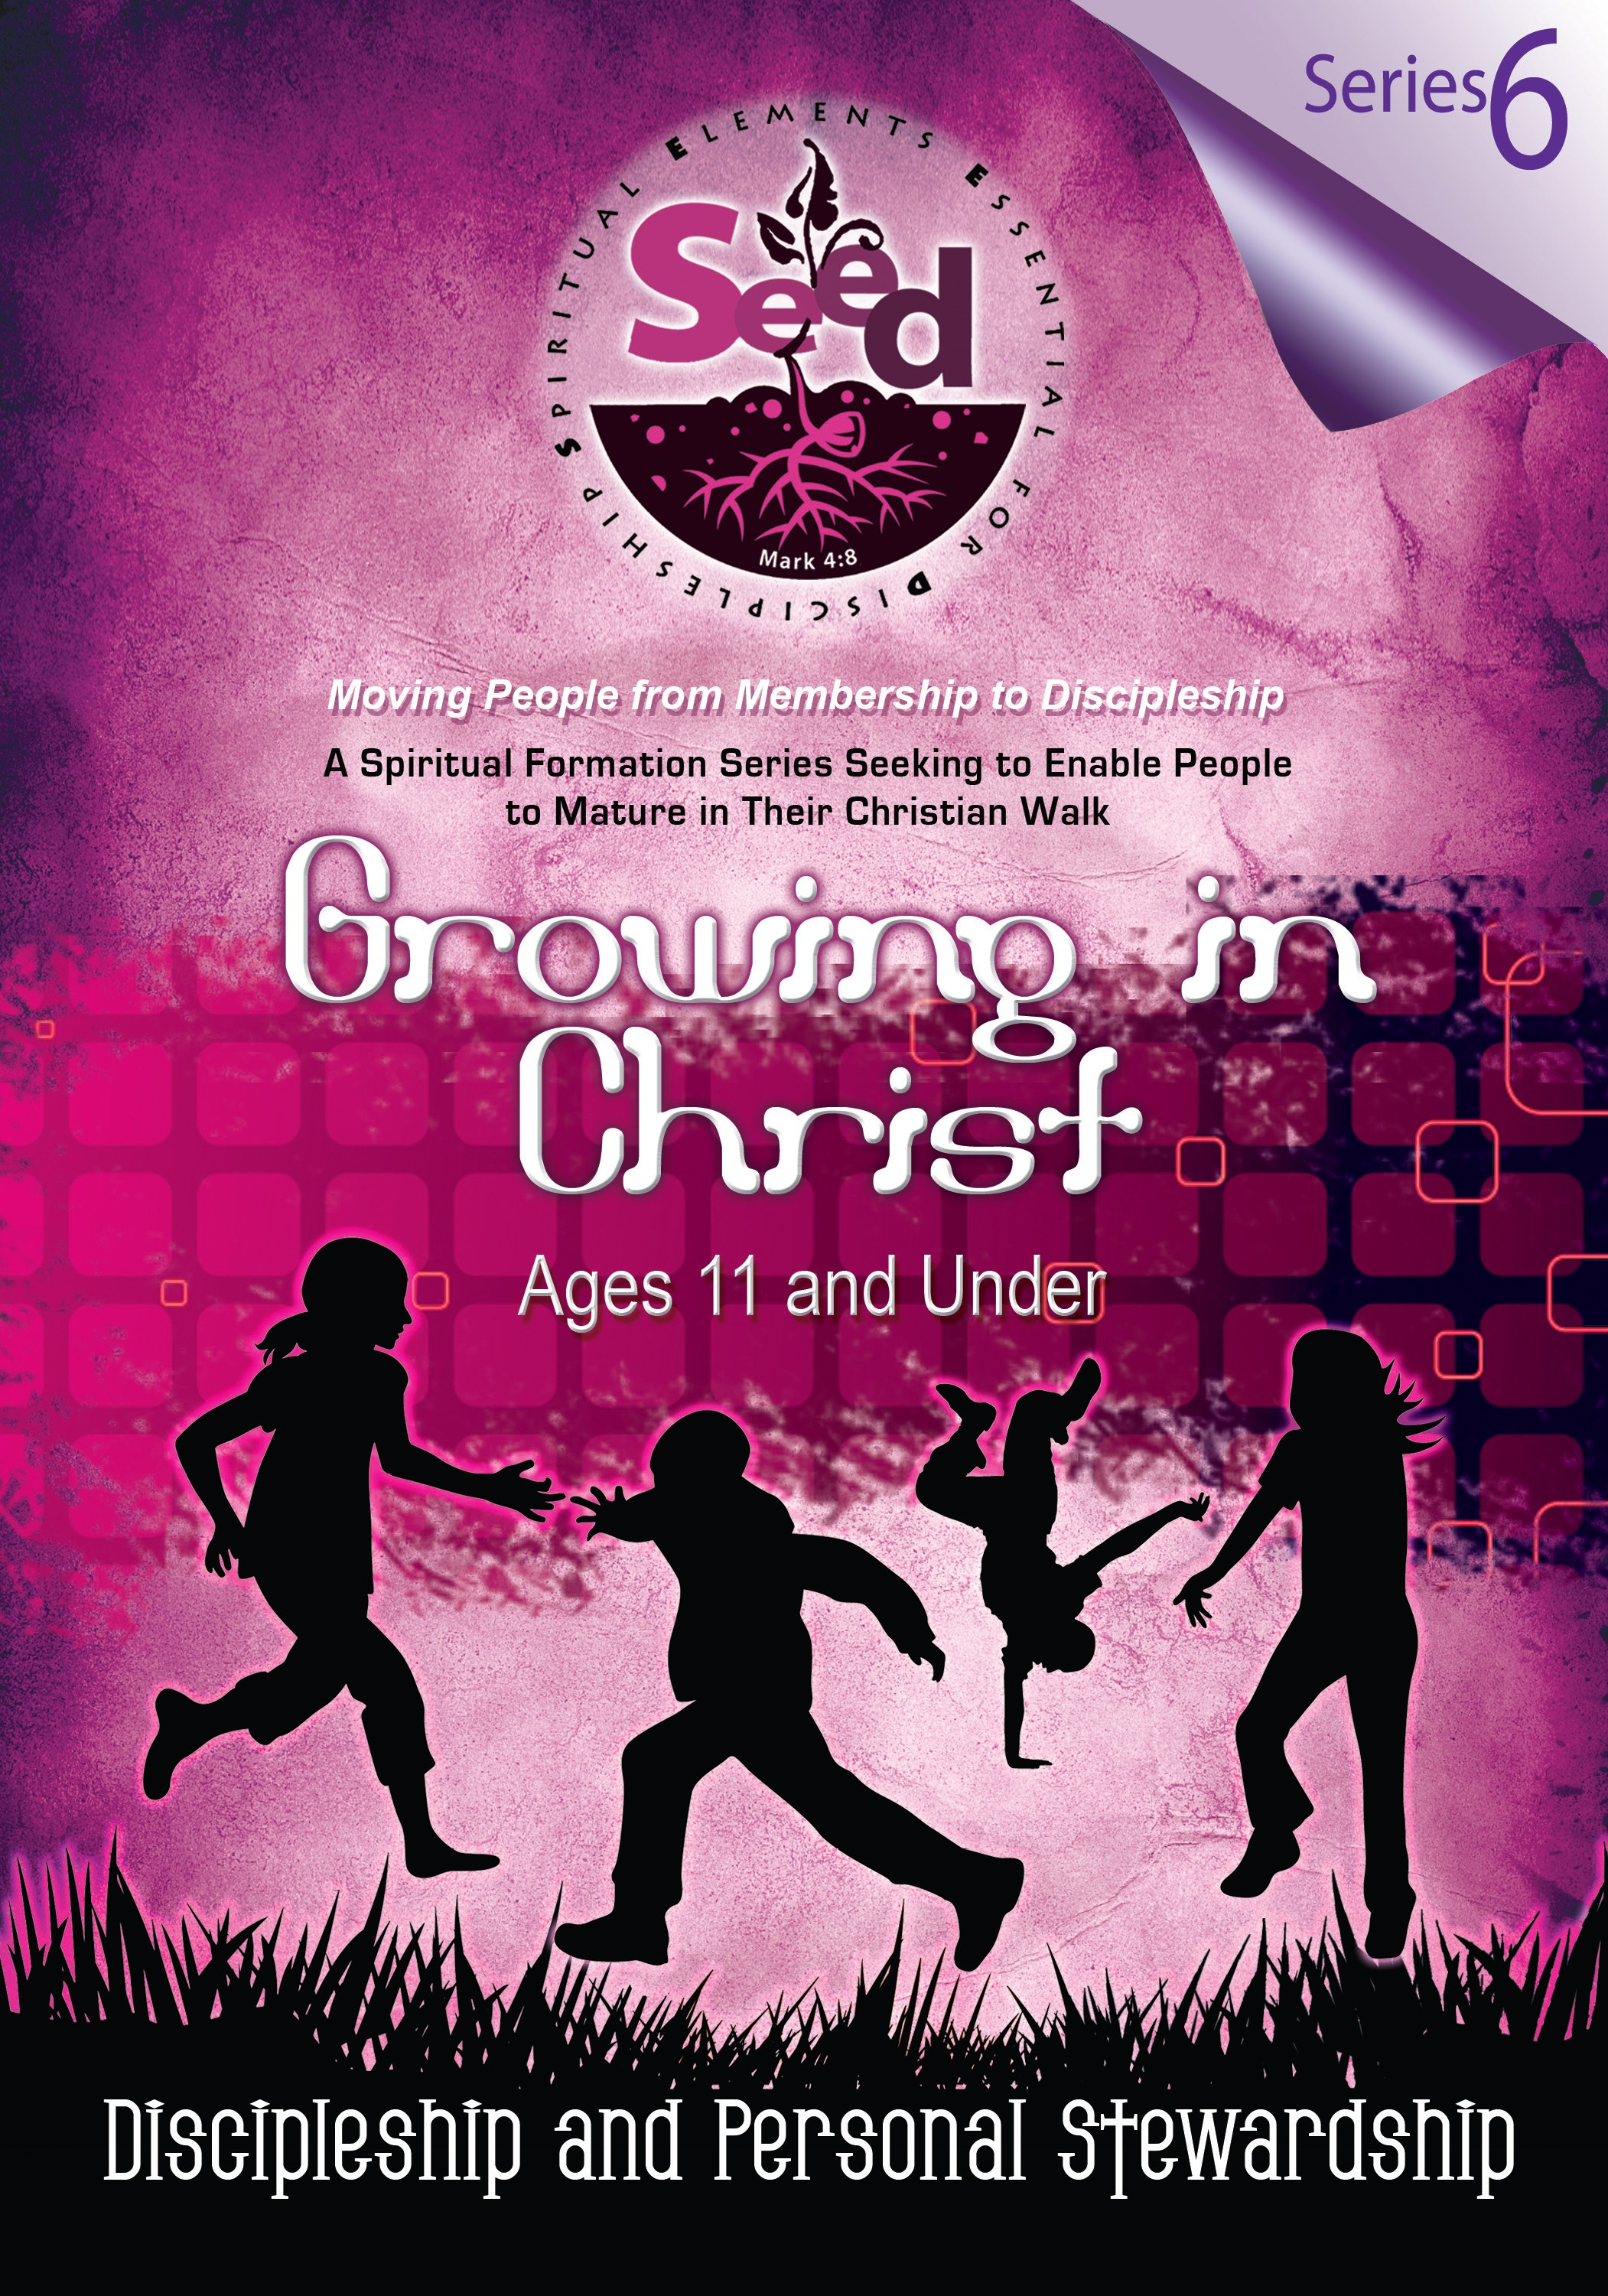 SEED Growing in Christ (Ages 11 and Under): Series 6: Discipleship and Personal Stewardship